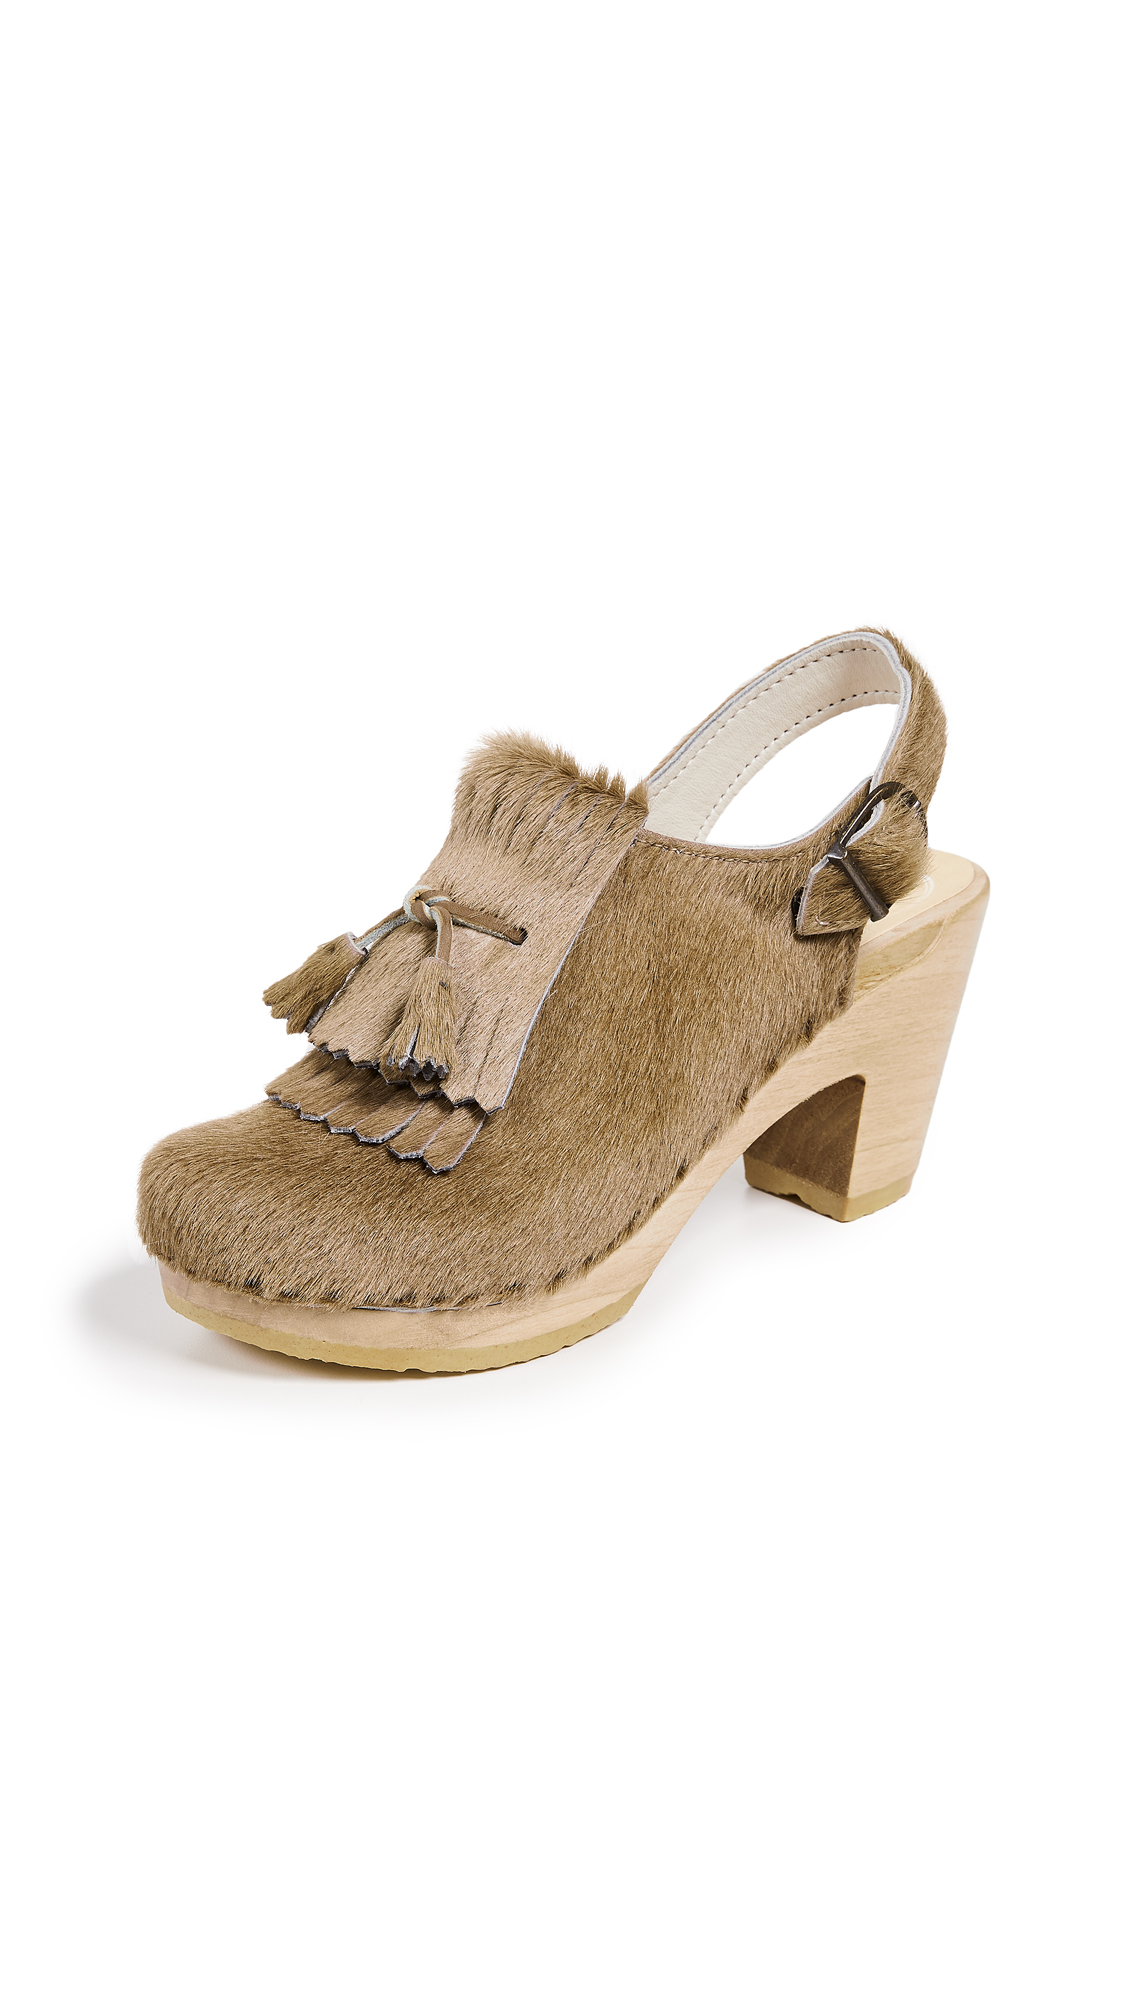 No.6 Keats Kiltie High Heel Clogs - Stone